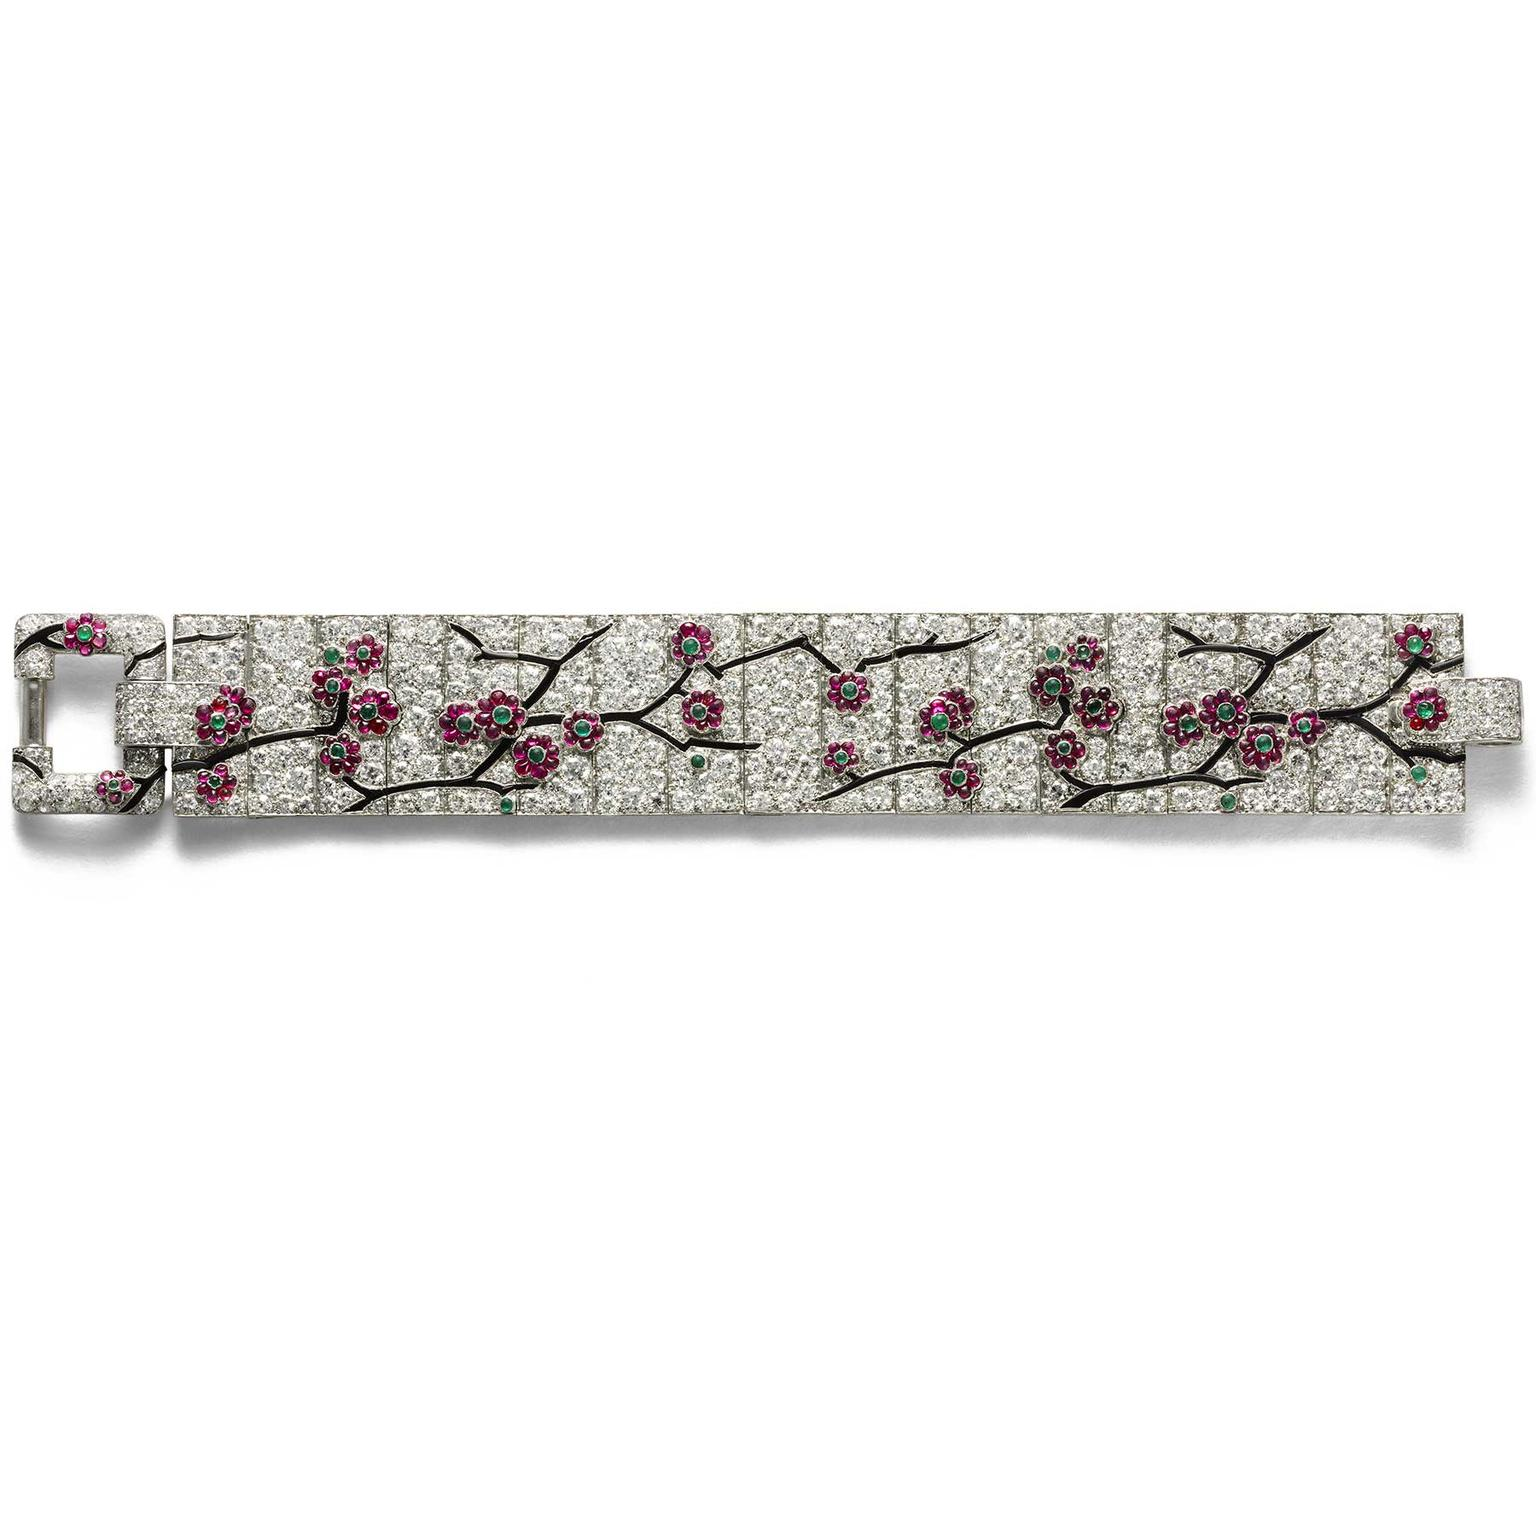 Cartier Collection cherry blossom bracelet, 1925